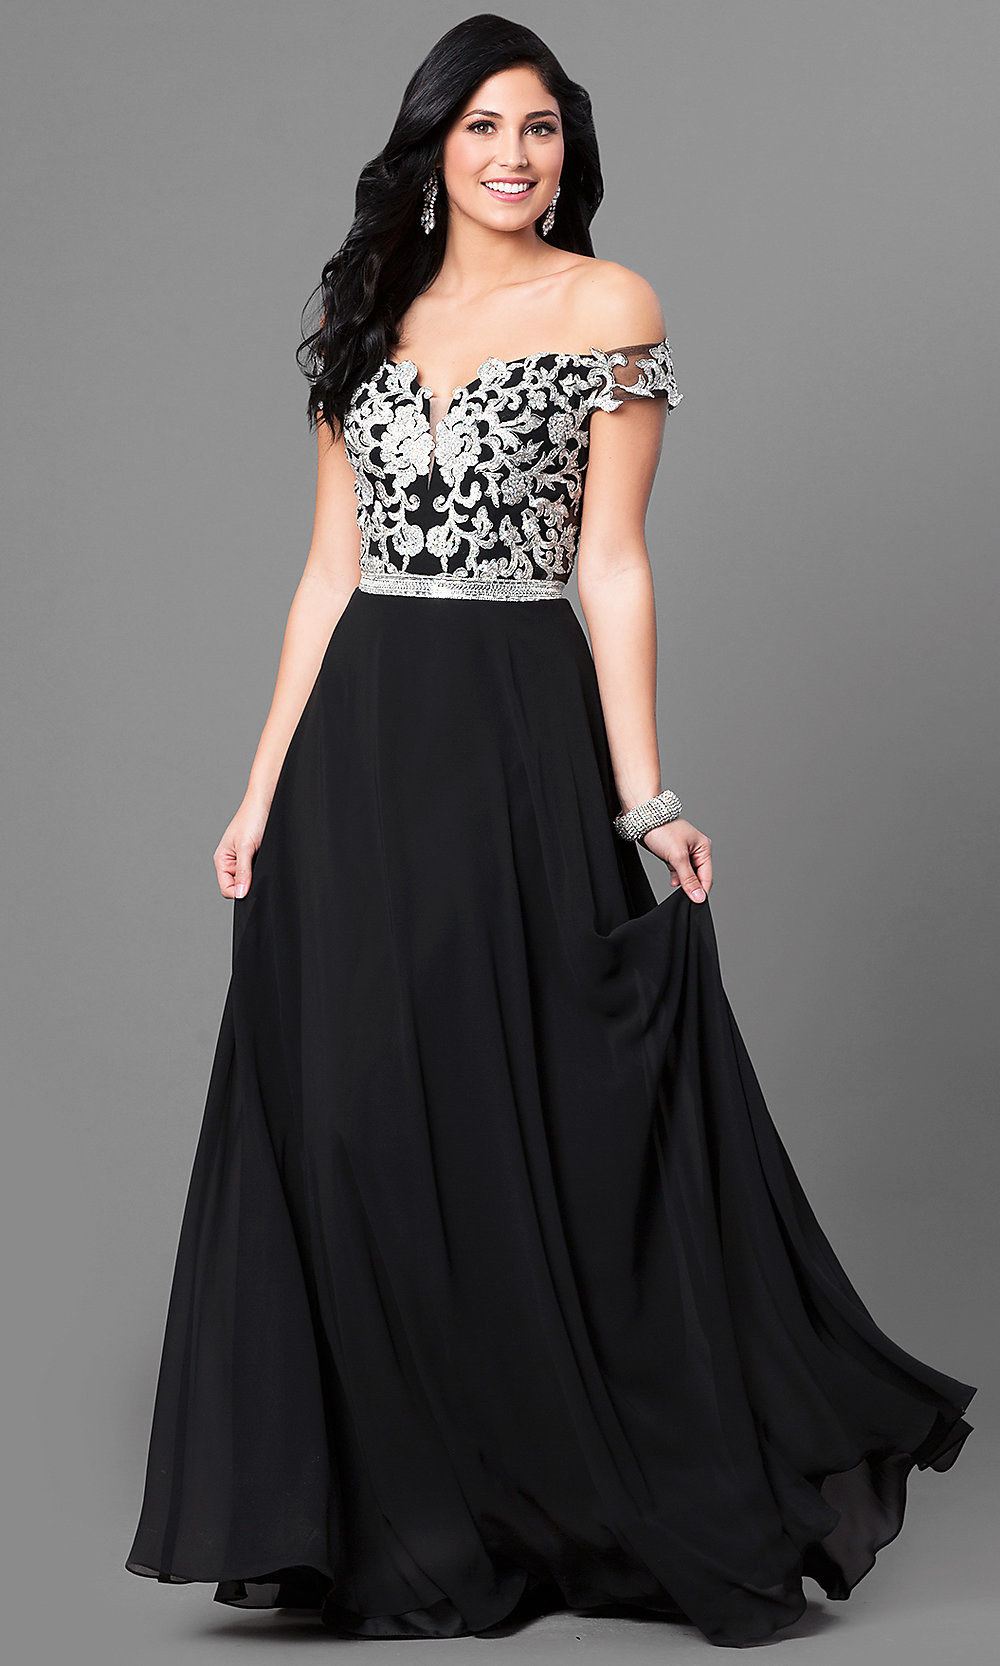 White Strapless Lace Bodice Tulle Ball Gown Formal Dresses ...  |Formal Ball Dresses With Lace